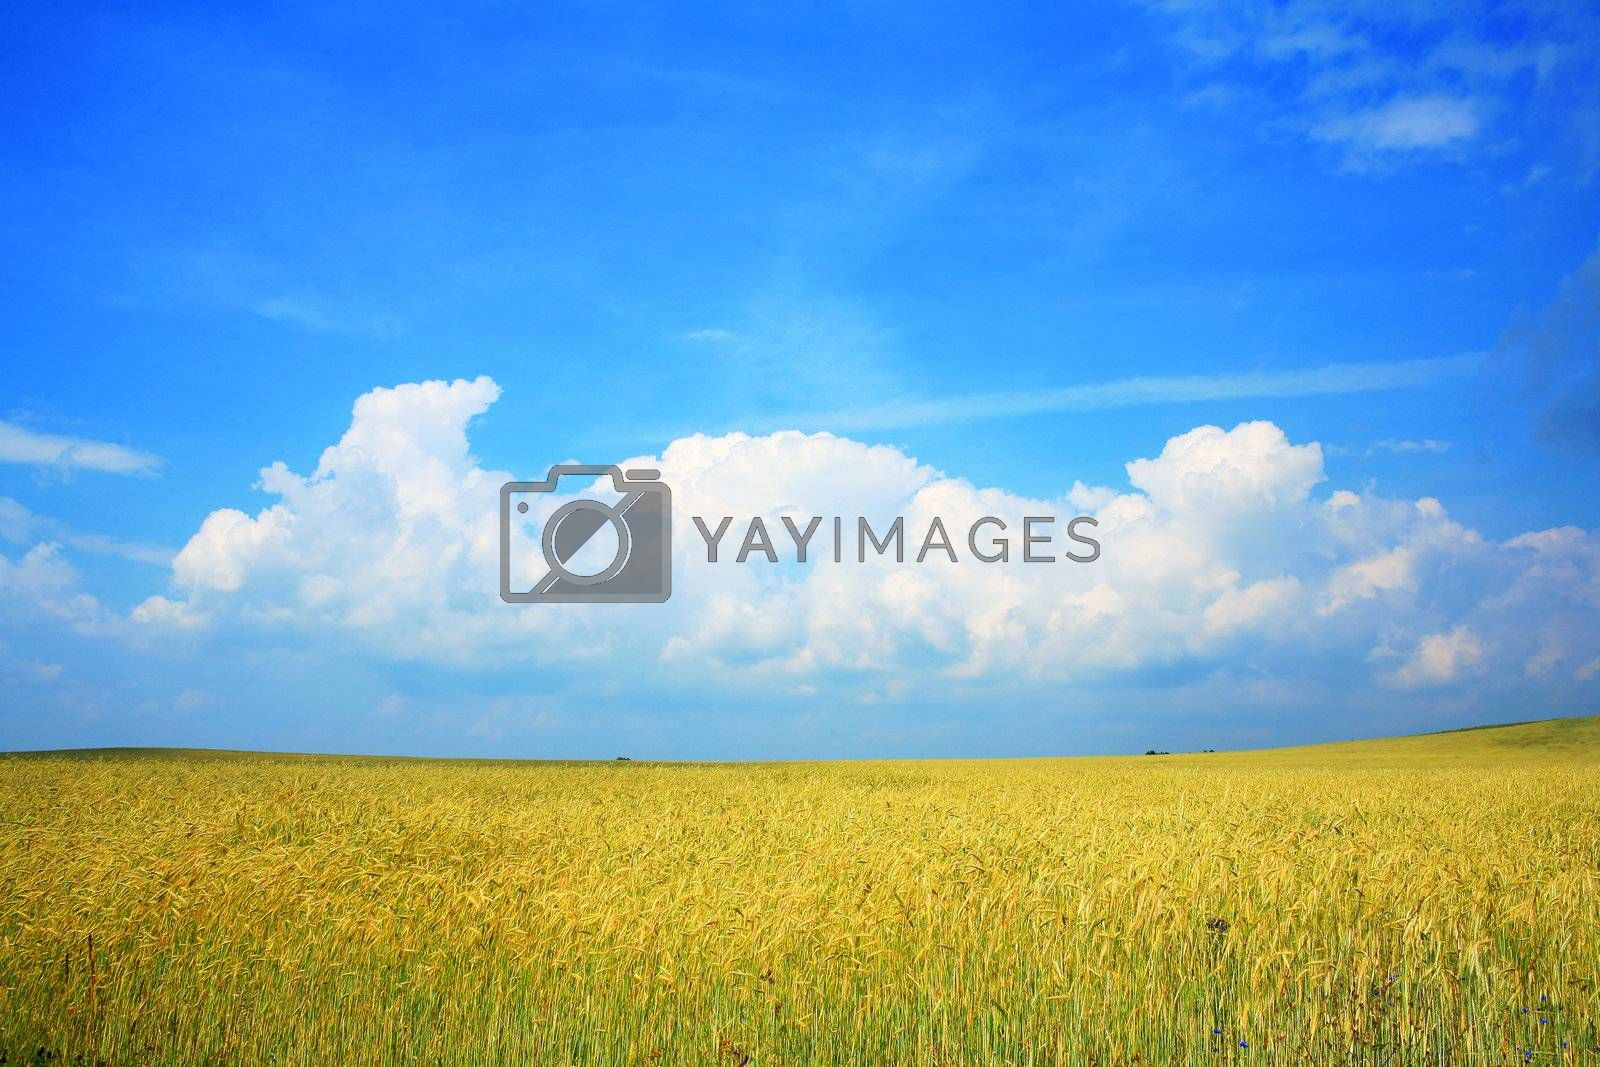 An image of yellow field of wheat and blue sky